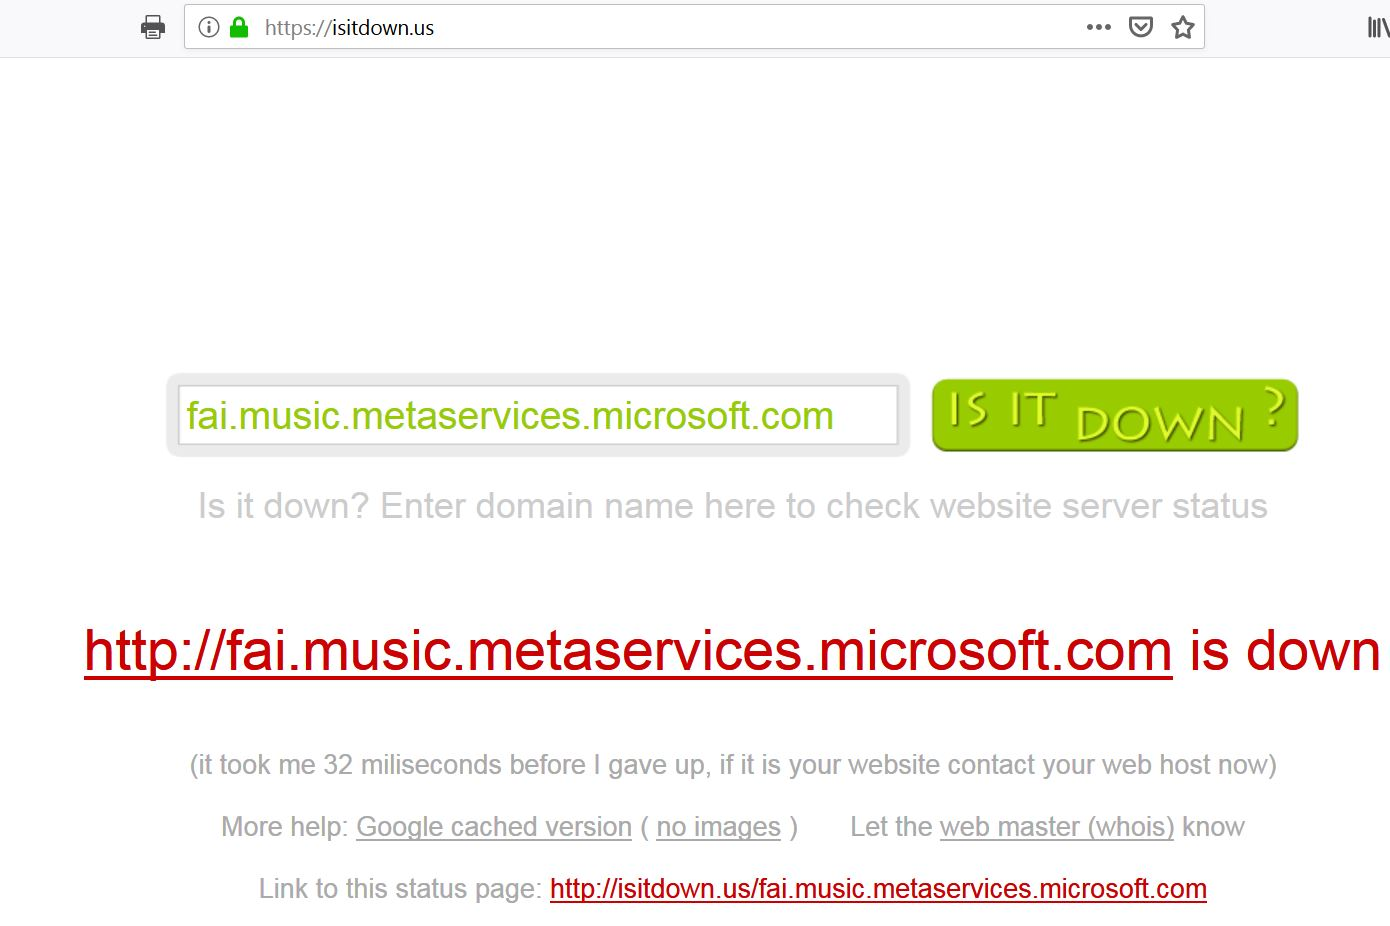 fai music metaservices microsoft com is down     and is